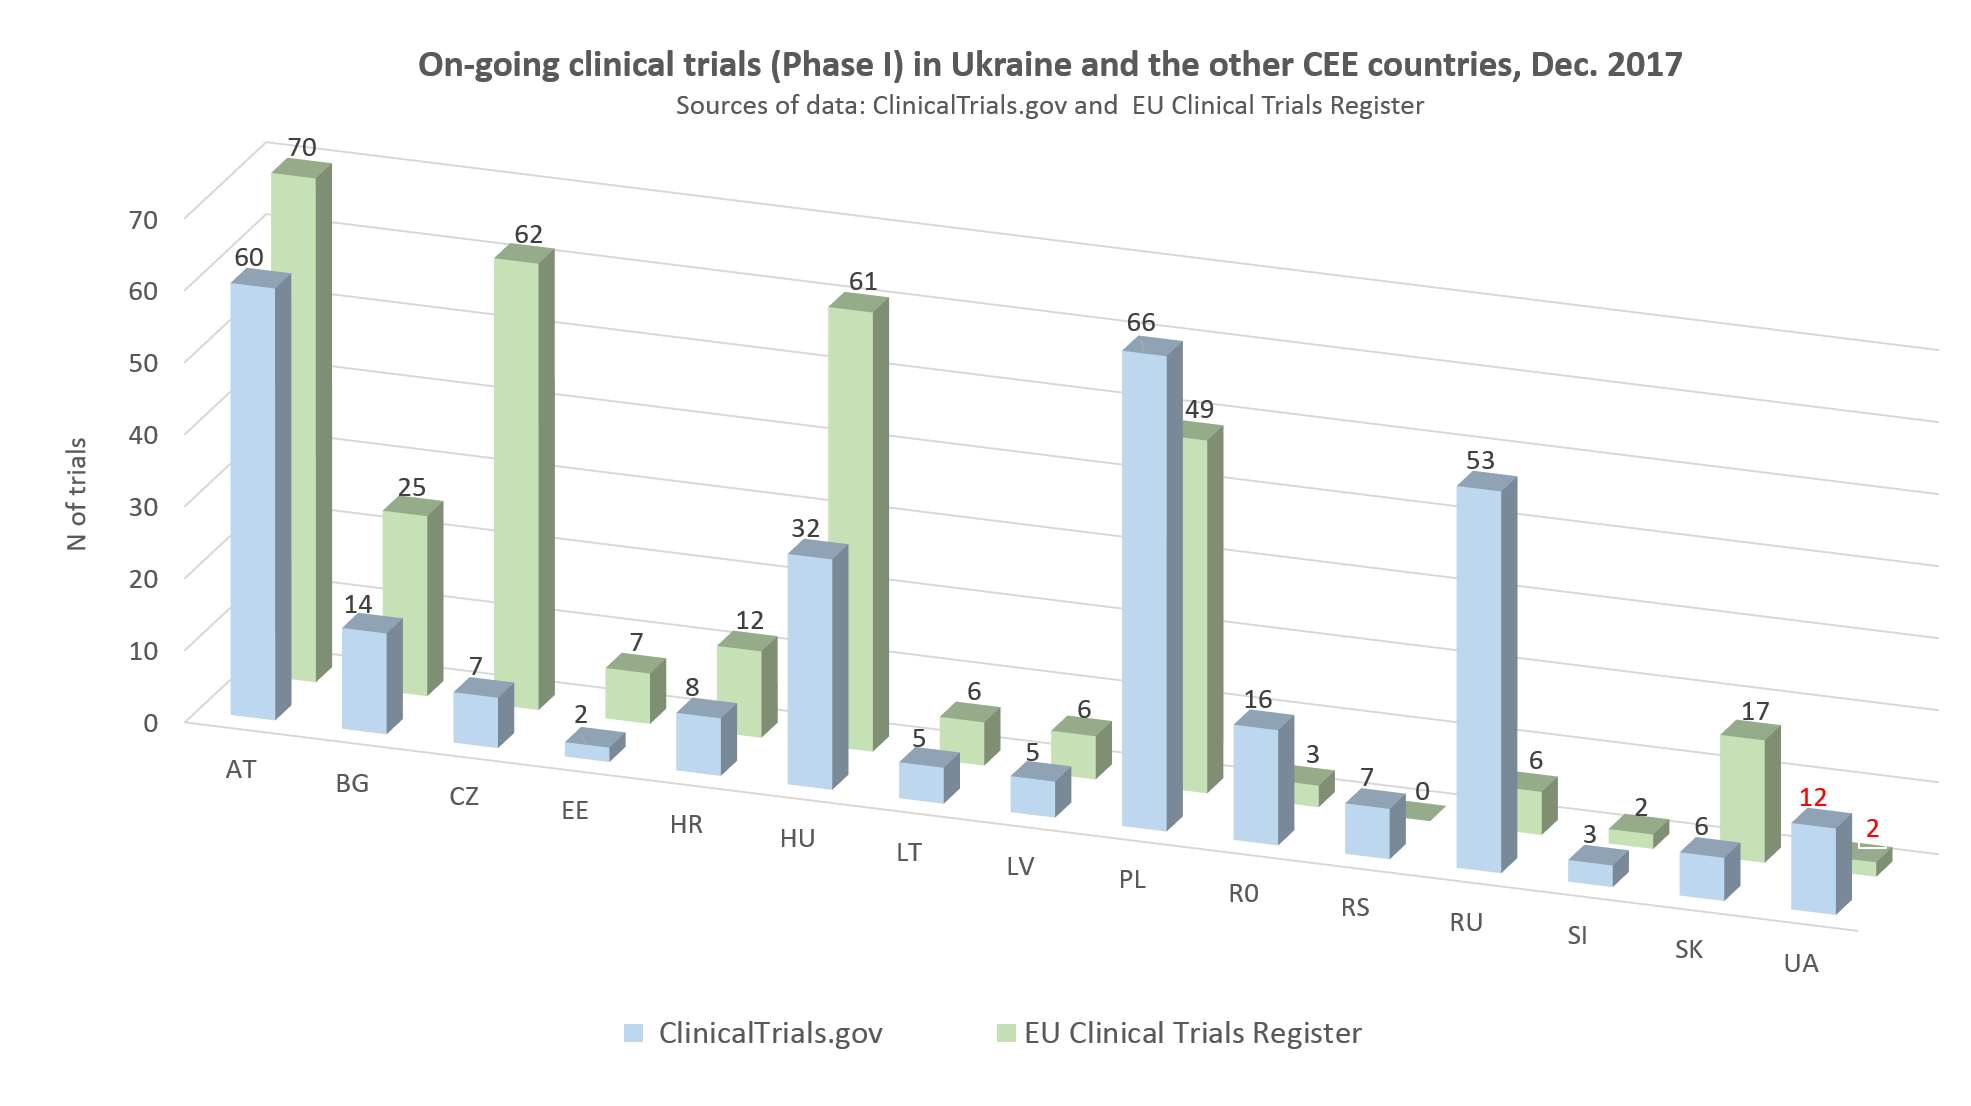 On-going clinical trials of phase I in Ukraine and other CEE countries, December 2017